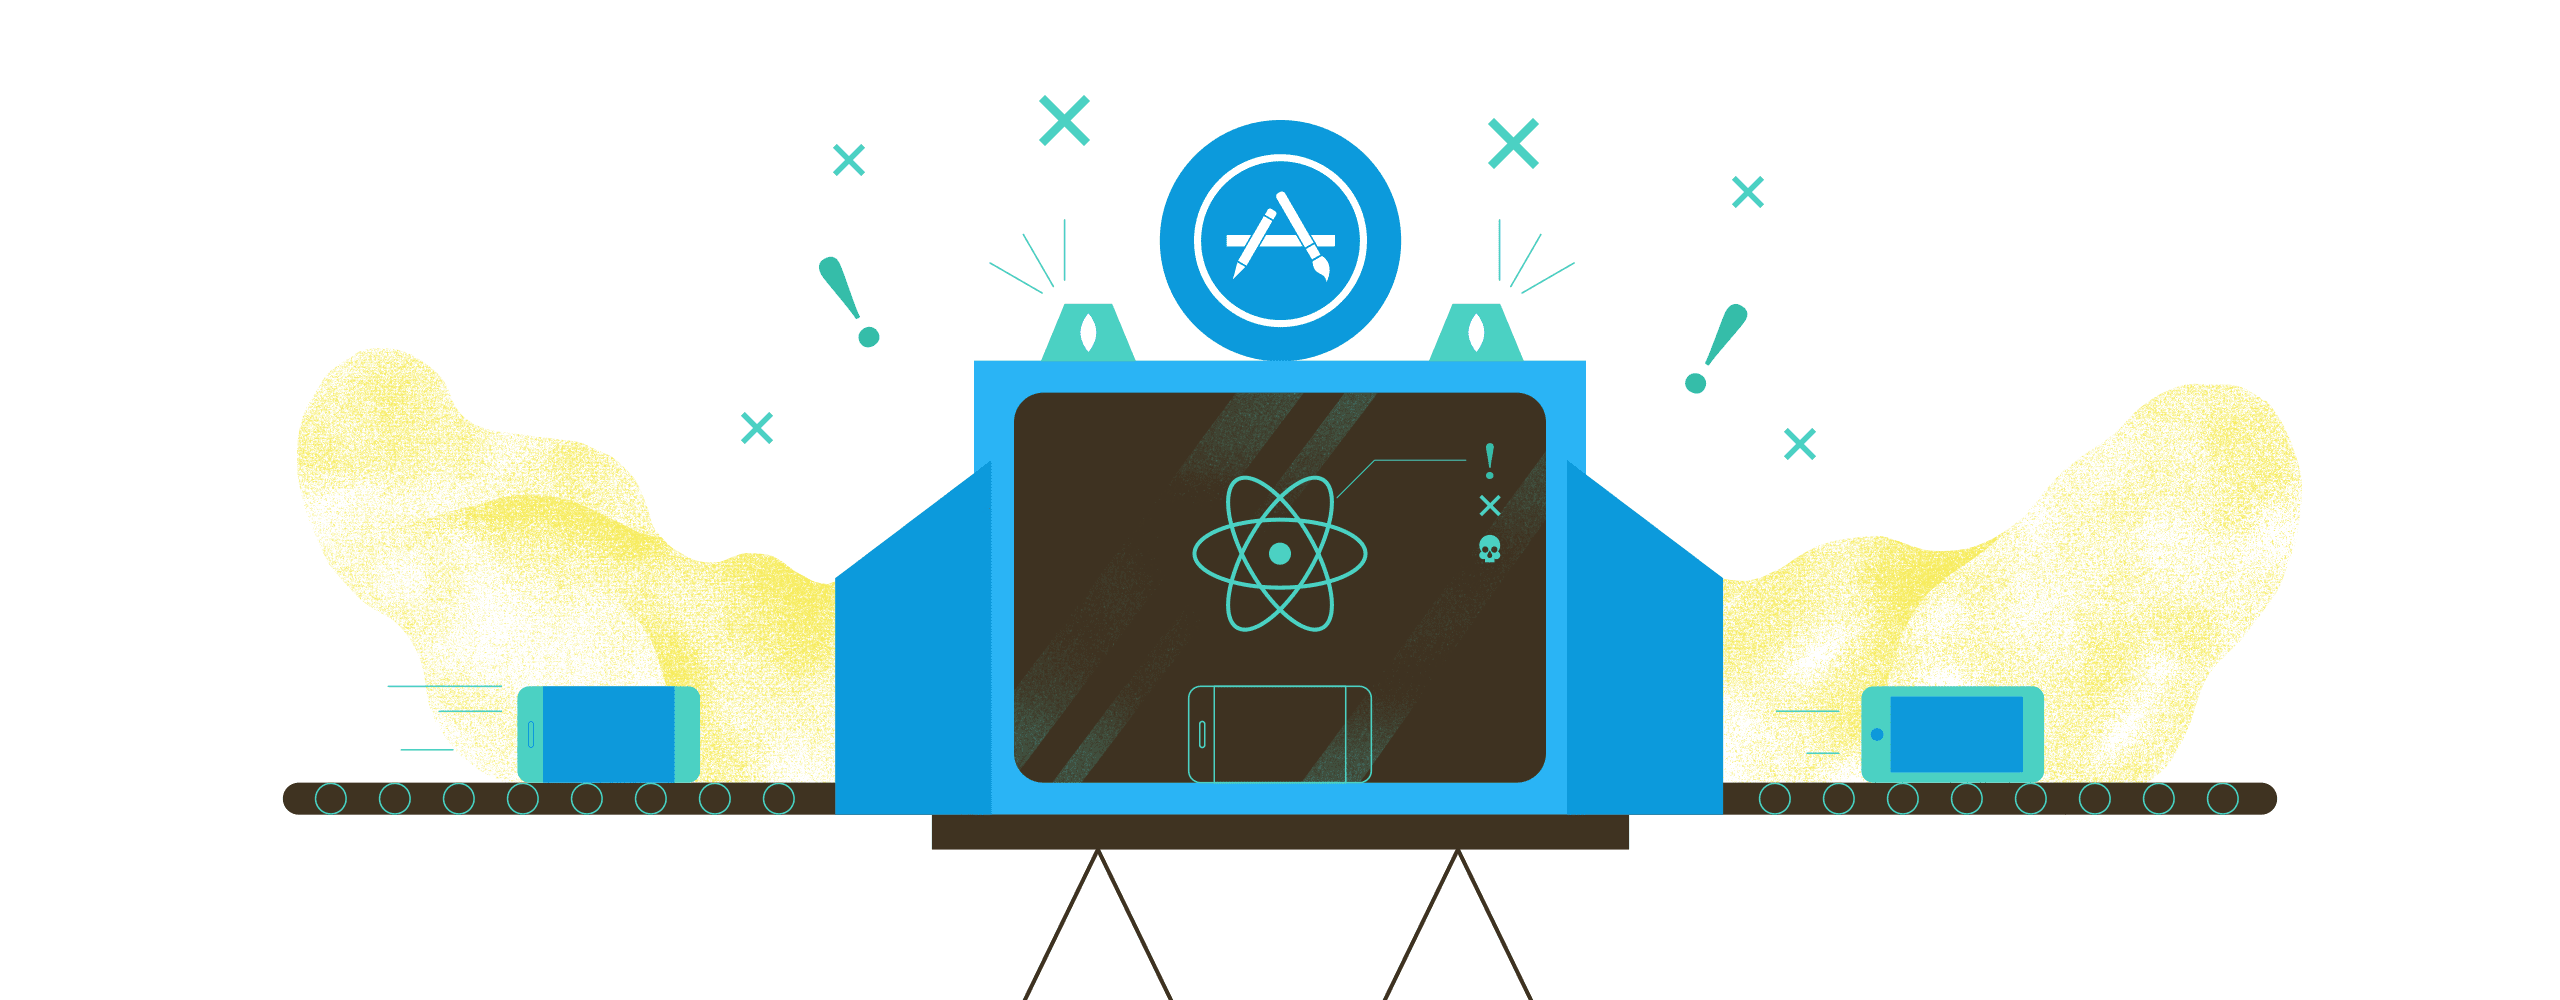 The reason why React Native apps may fail App Store review